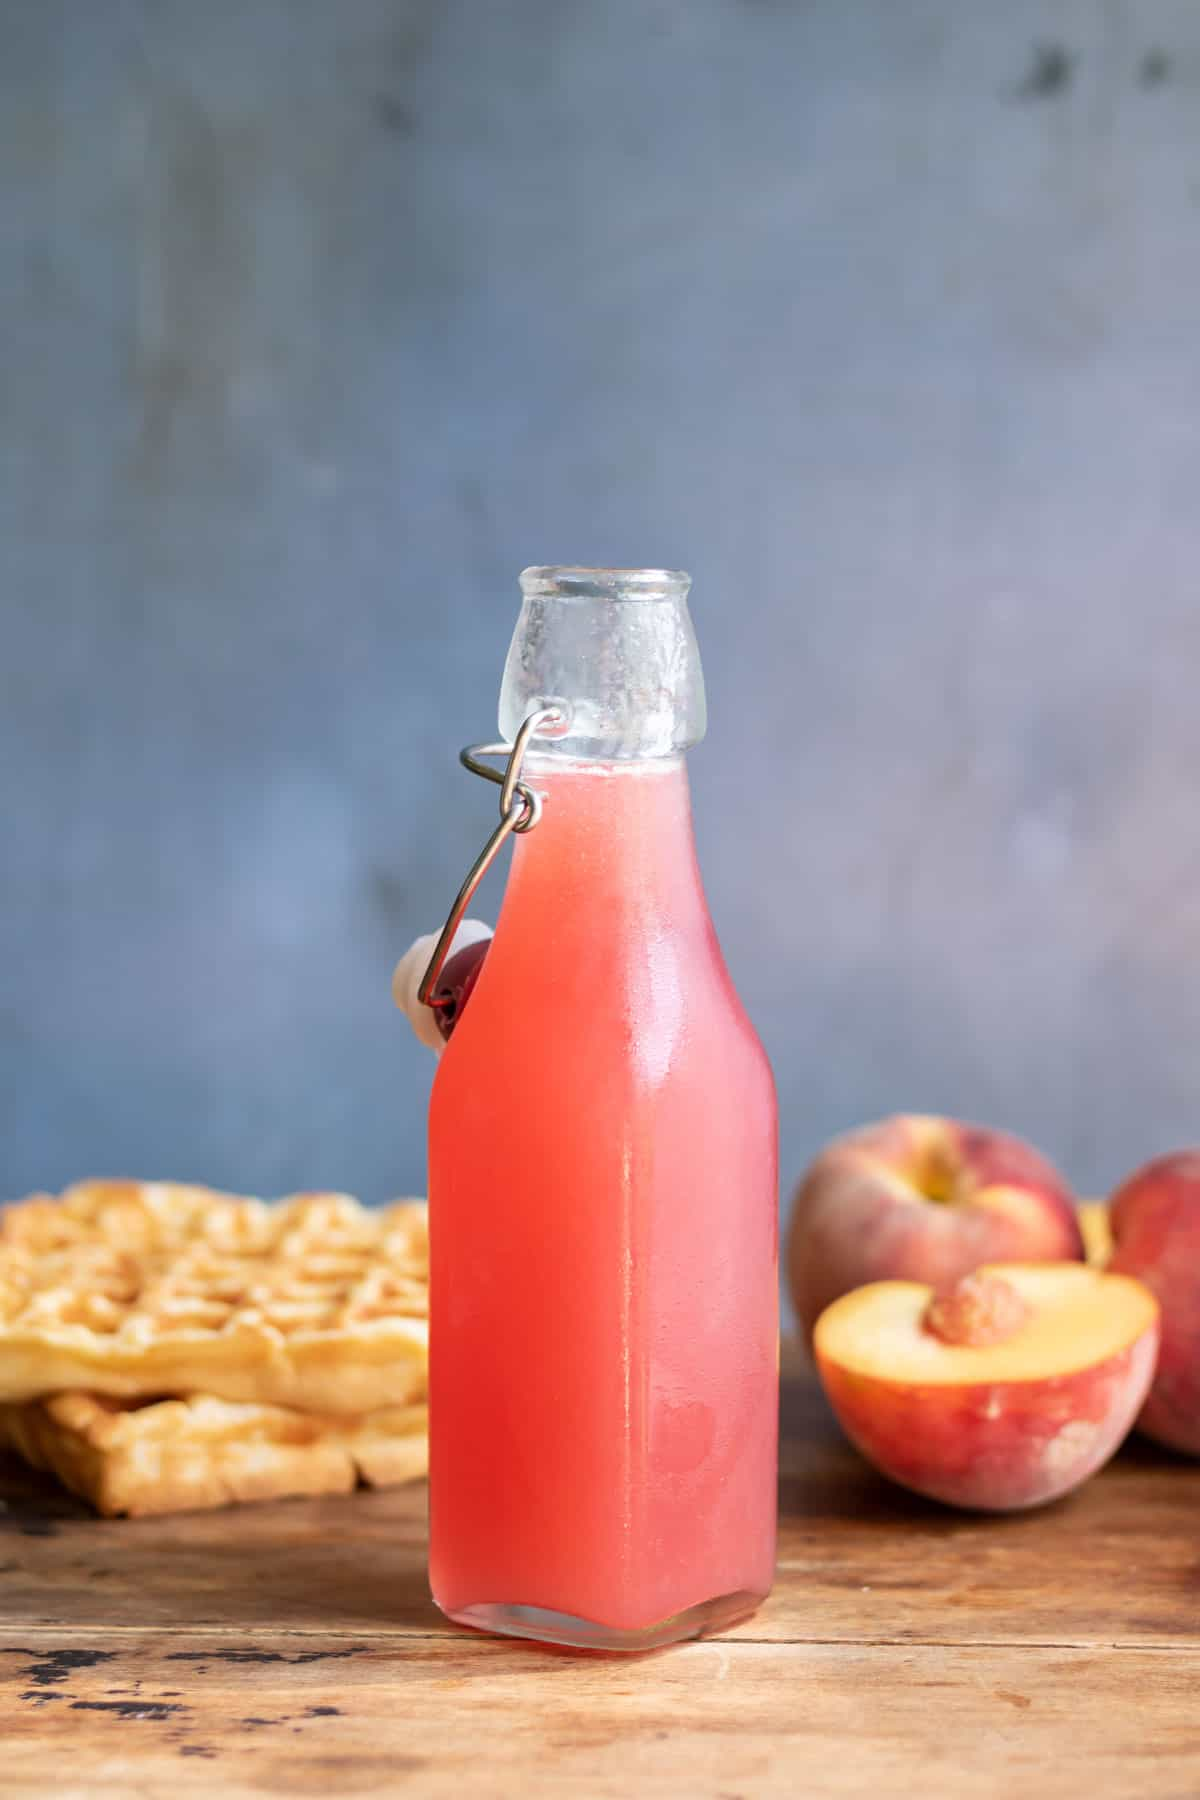 Bottle of fresh peach syrup next to peaches and waffles.